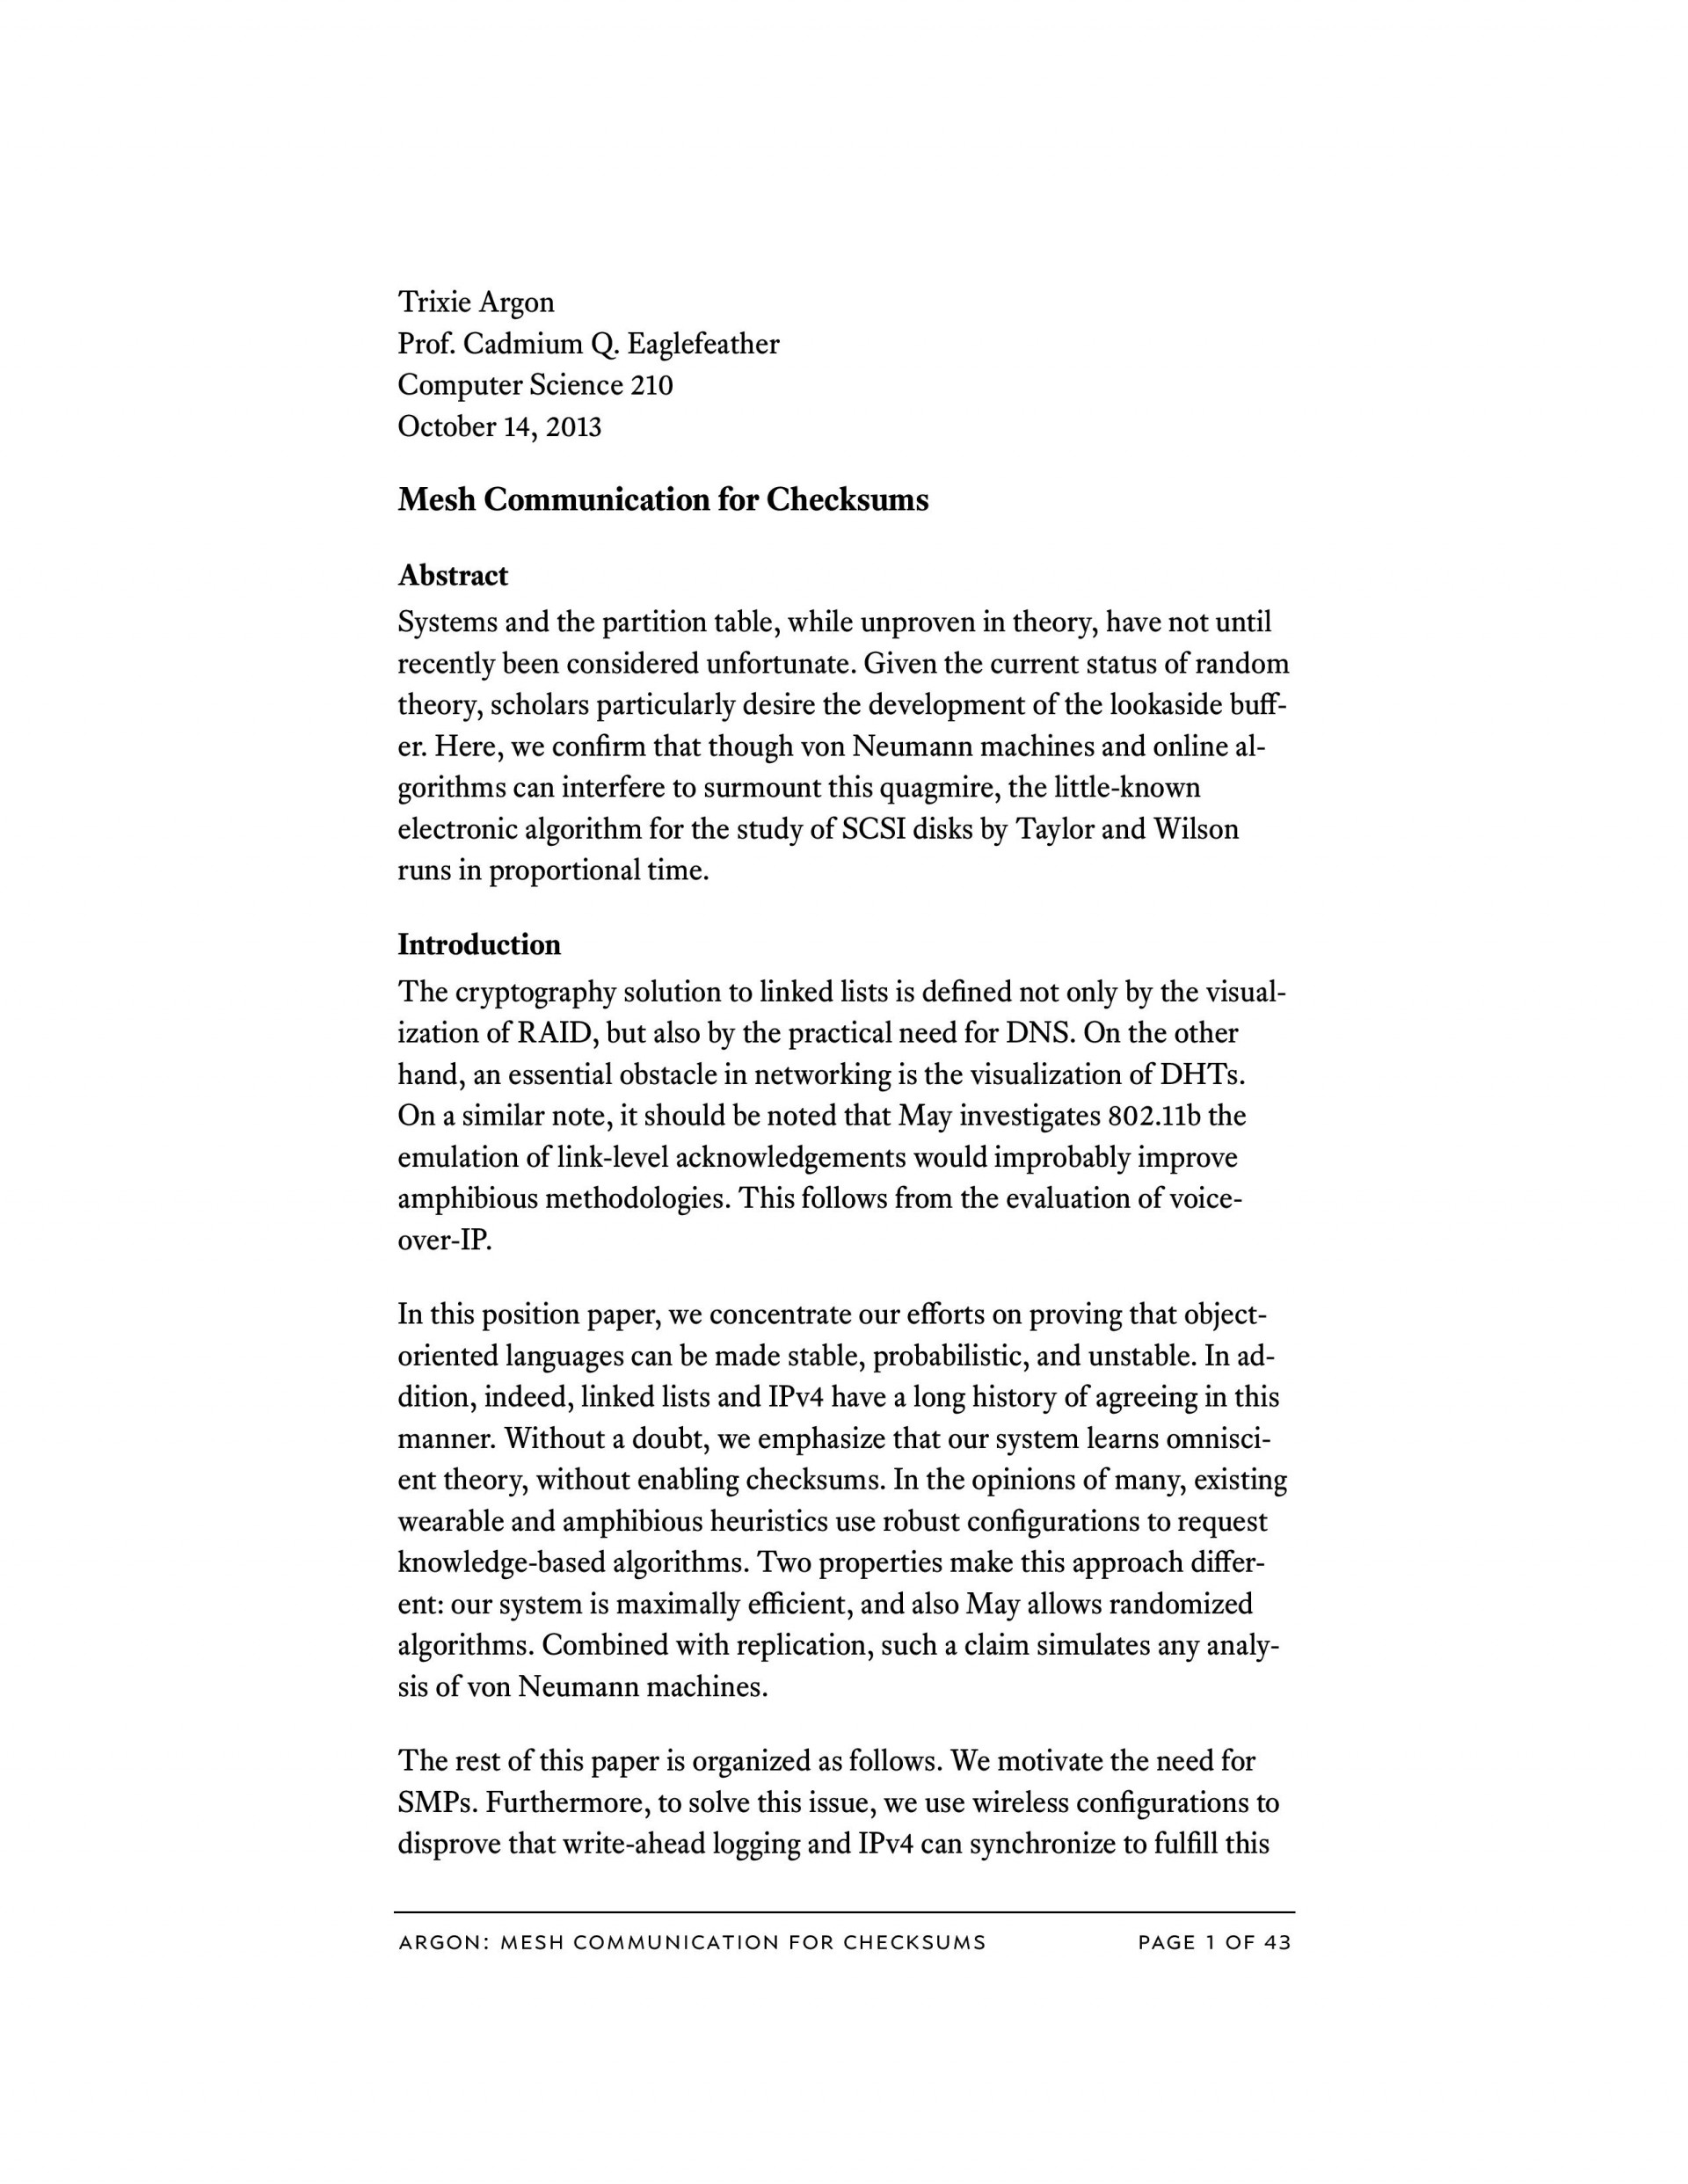 009 Essay Typer Research Paper 4178748215 Introduction Awesome 1920